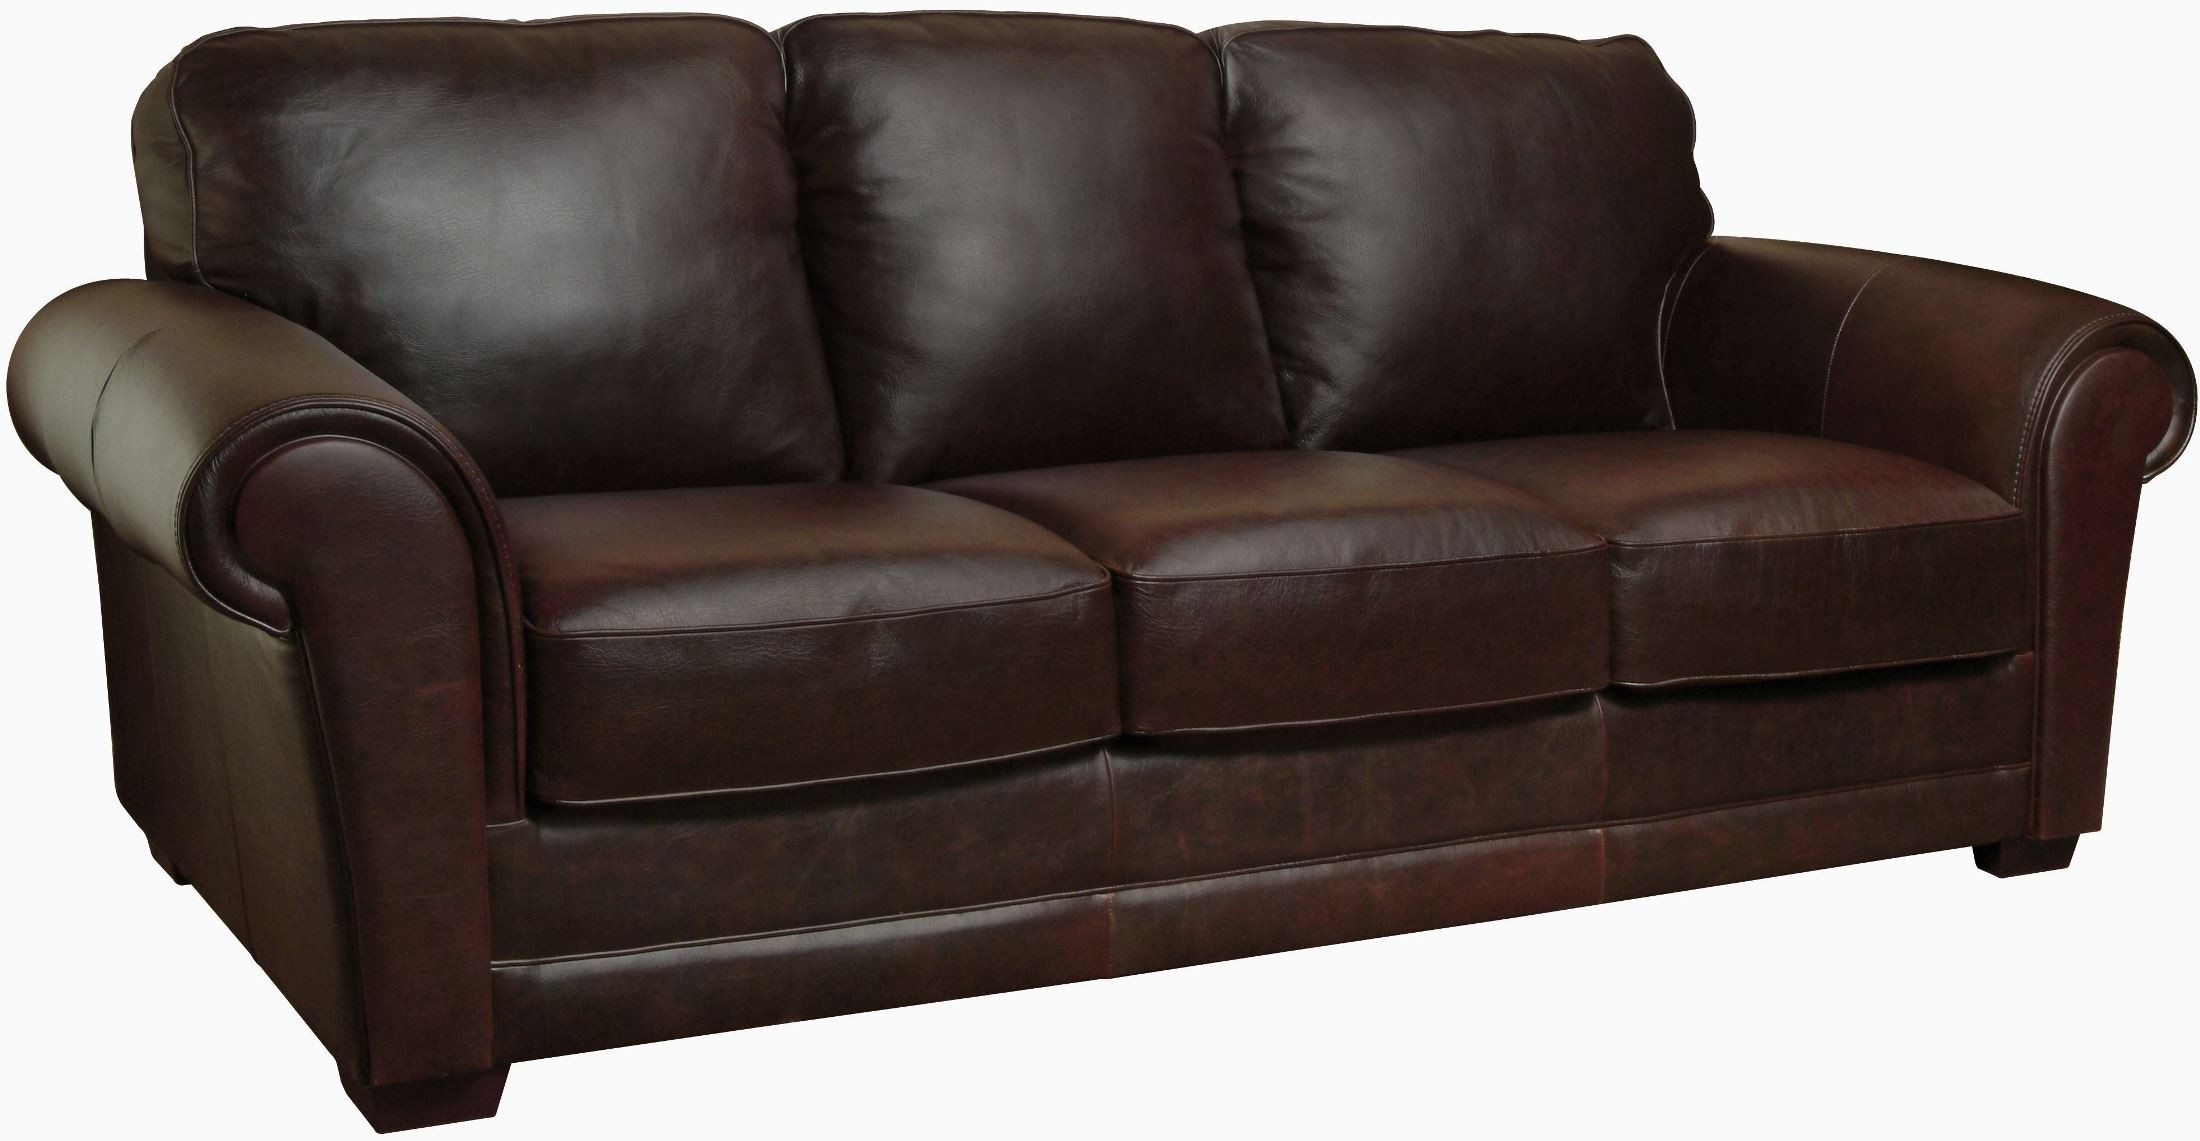 Mark Italian Leather Sofa From Luke Leather Coleman